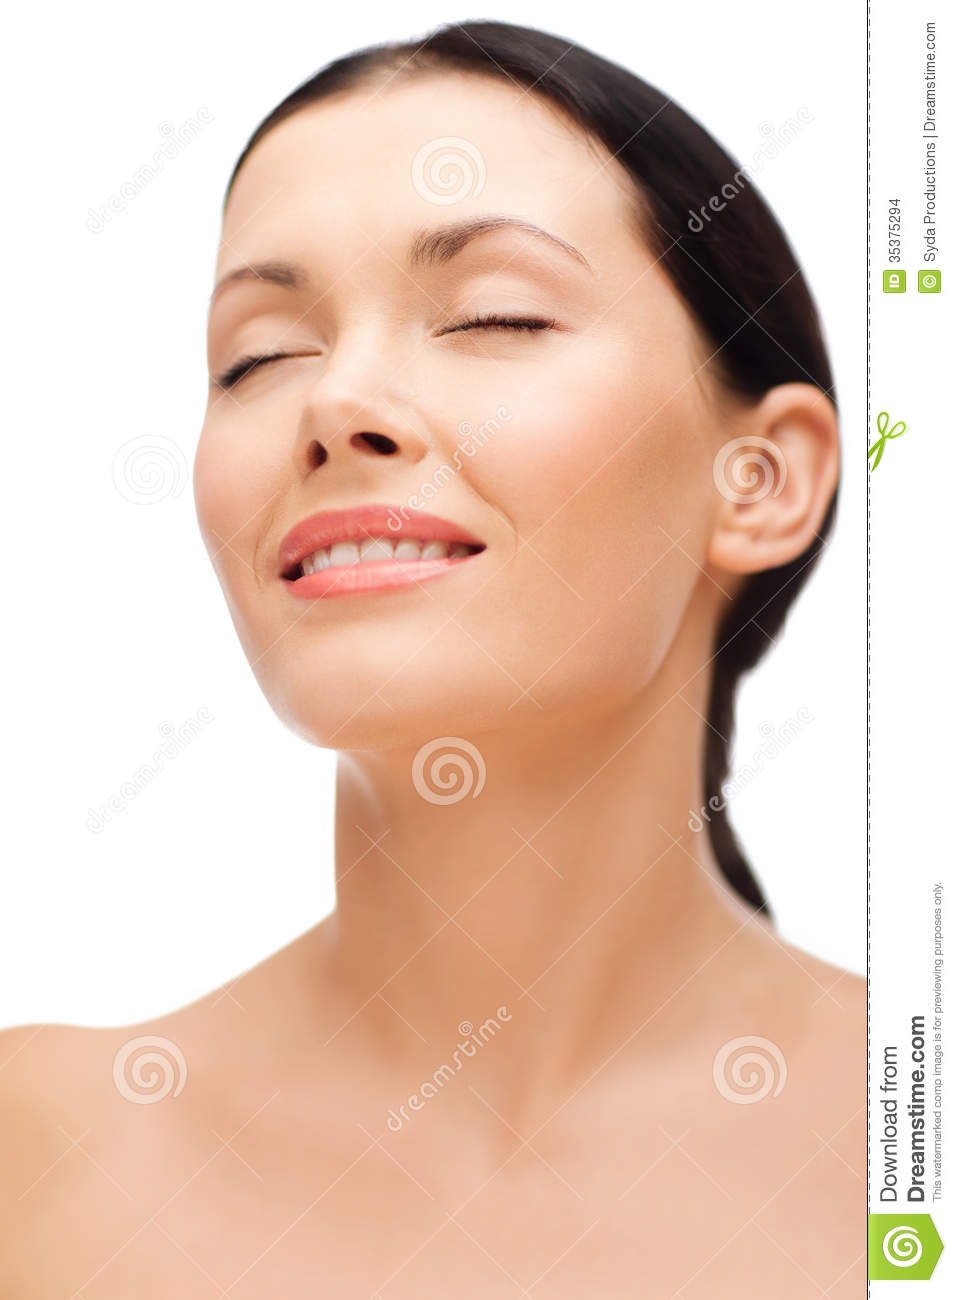 Smiling Young Woman With Closed Eyes Stock Photo - Image ...